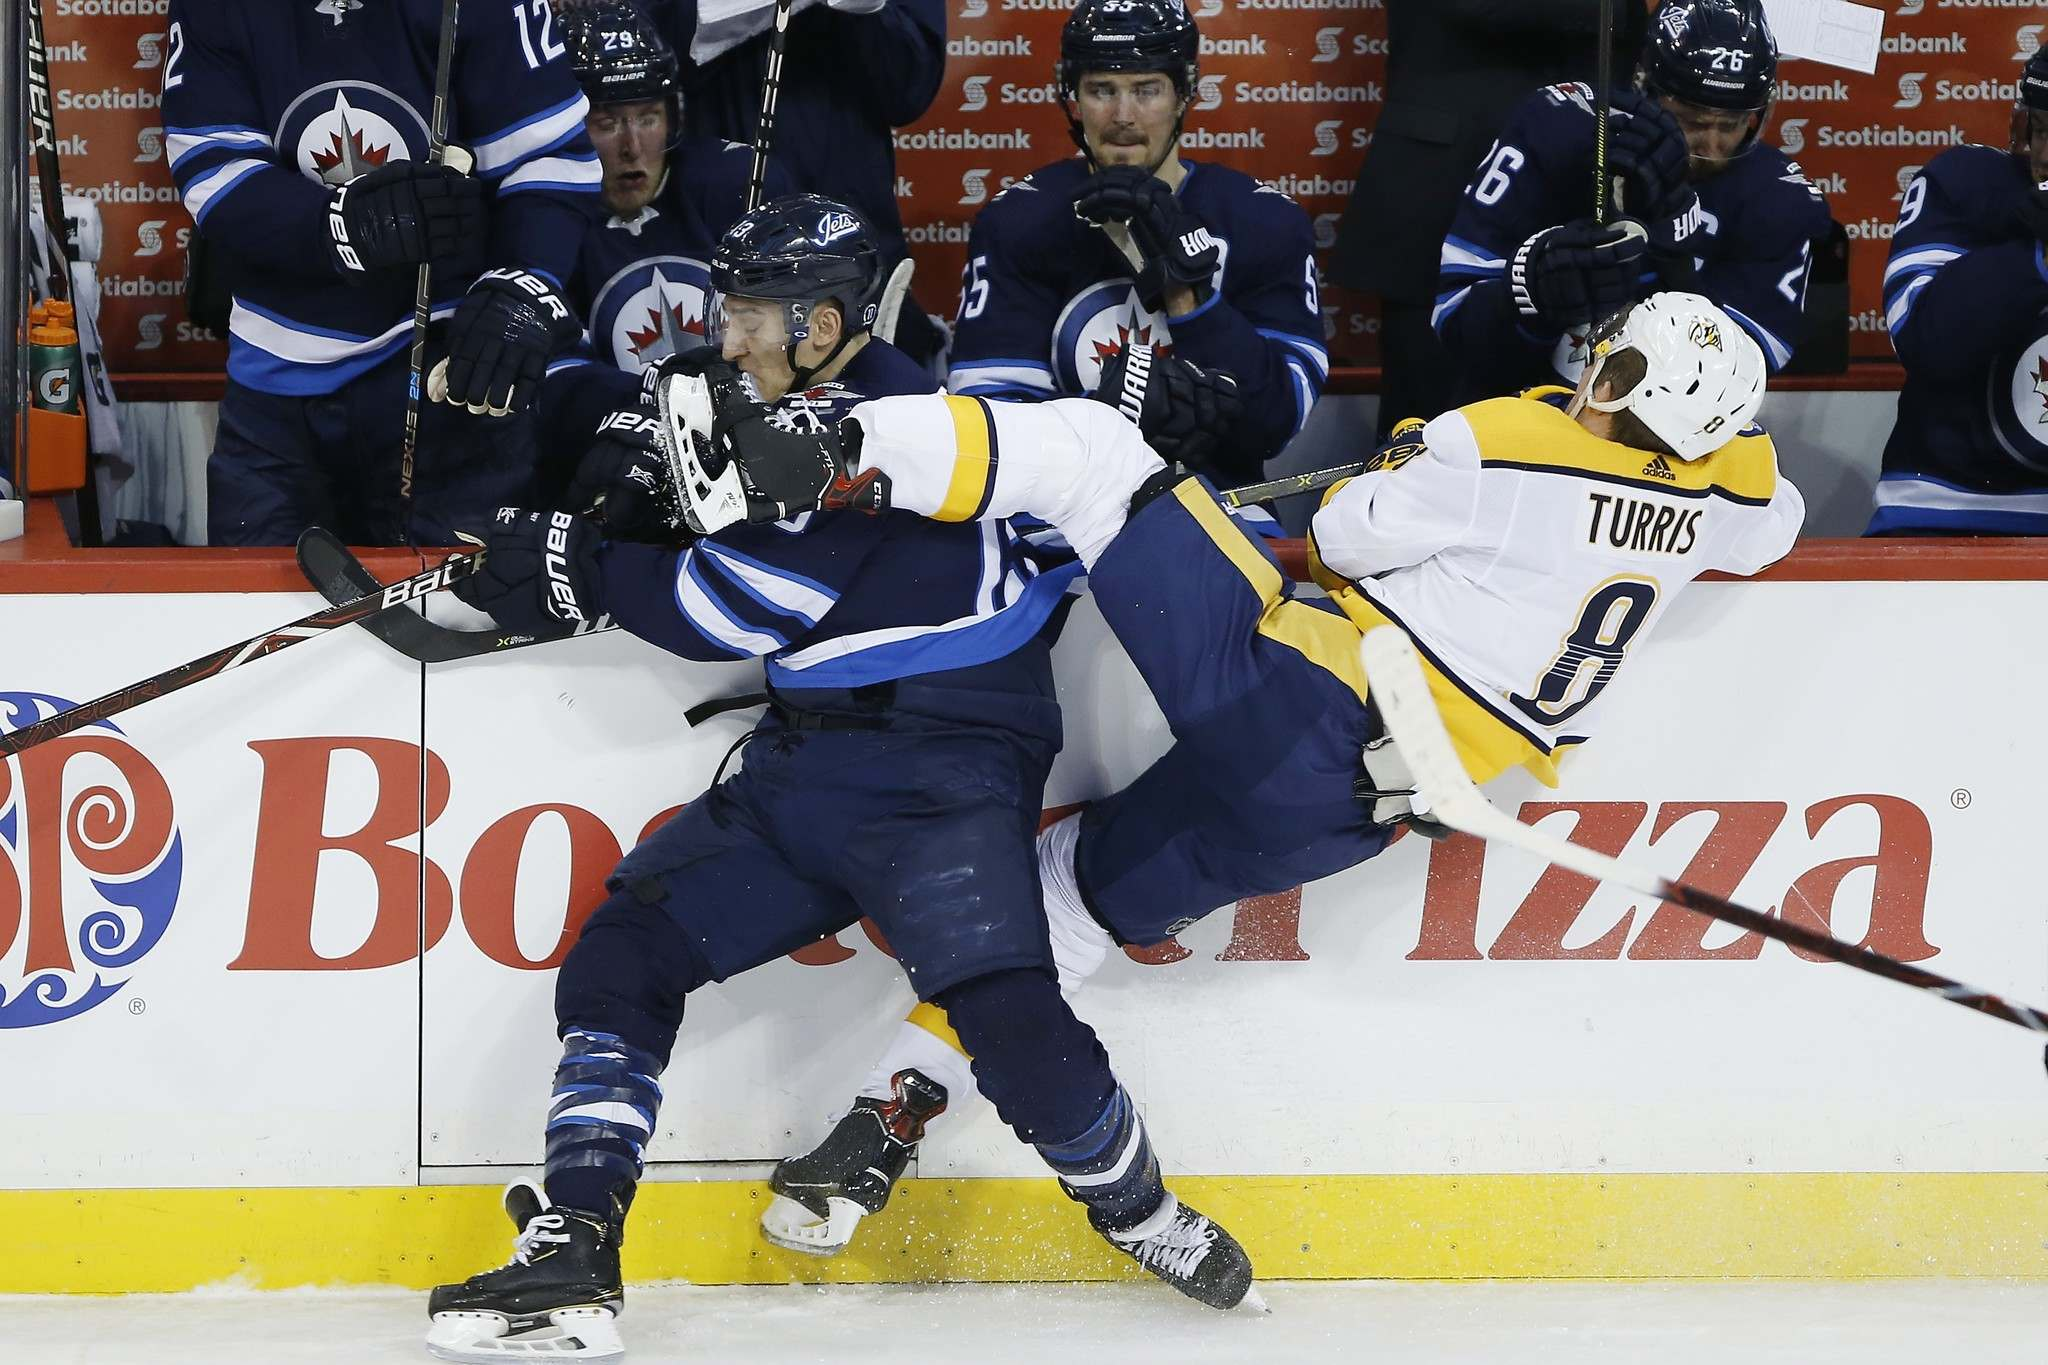 The Winnipeg Jets and Nashville Predators aren't what you would call fond of each other. (John Woods / The Canadian Press files)</p>